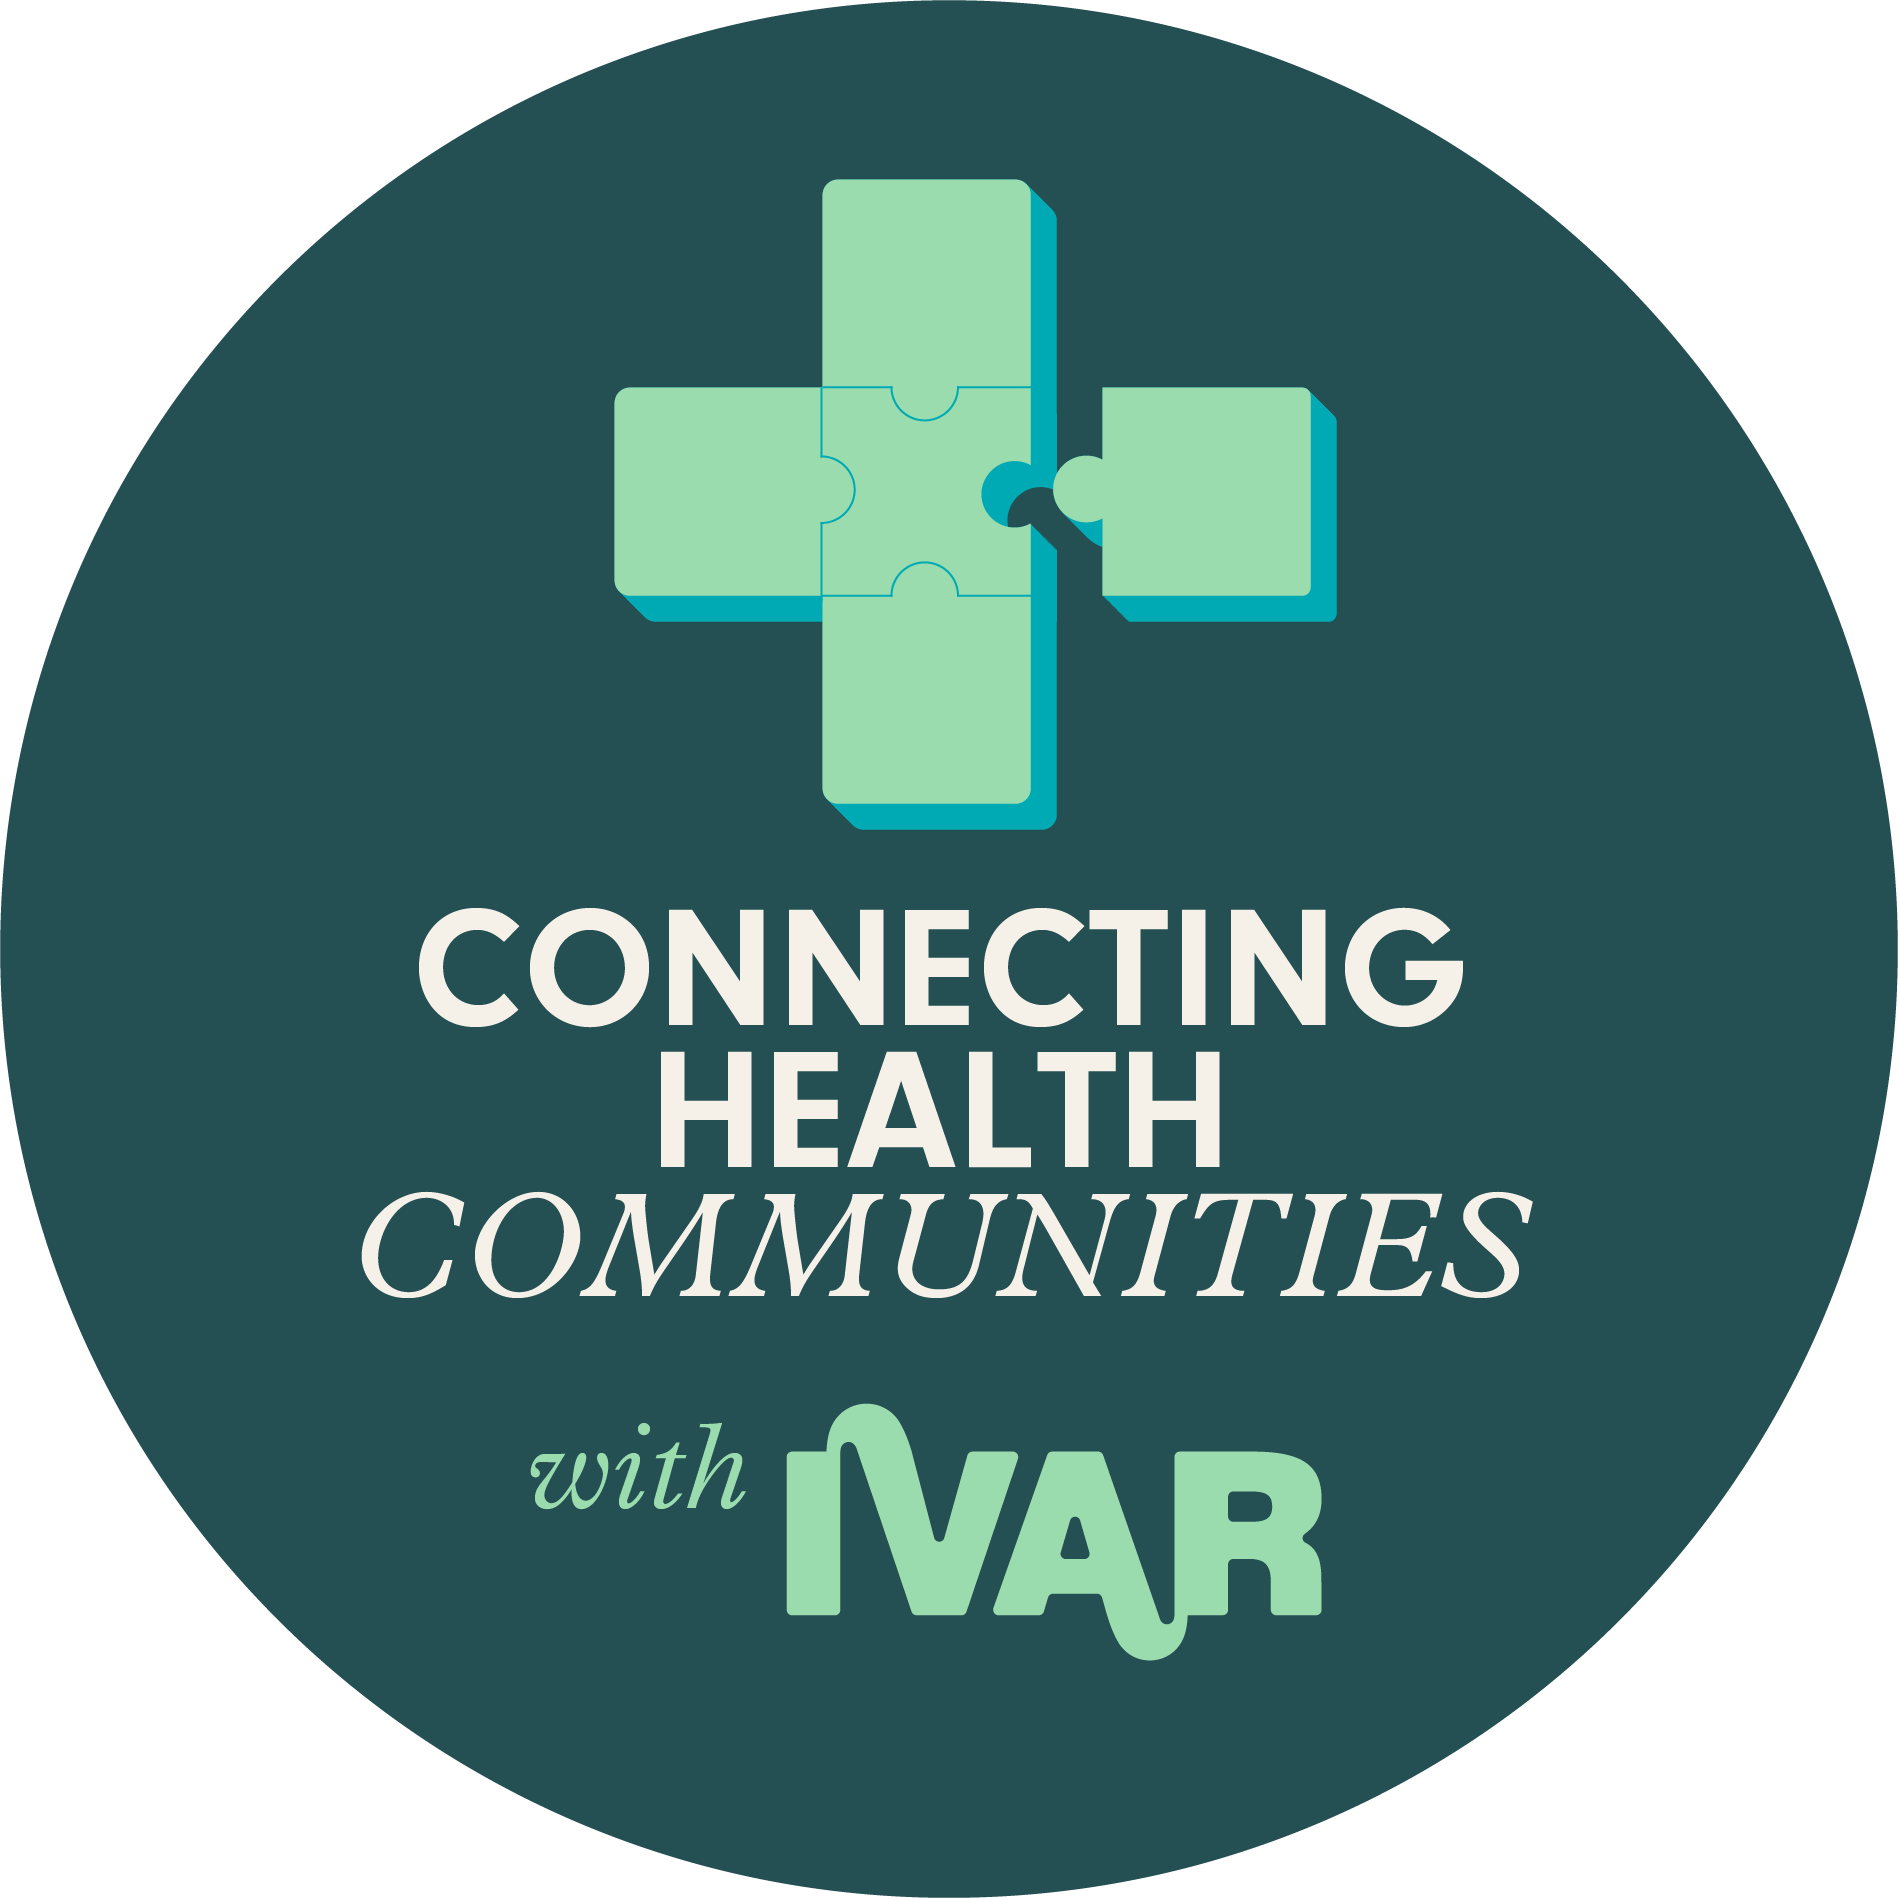 Connecting Health Communities